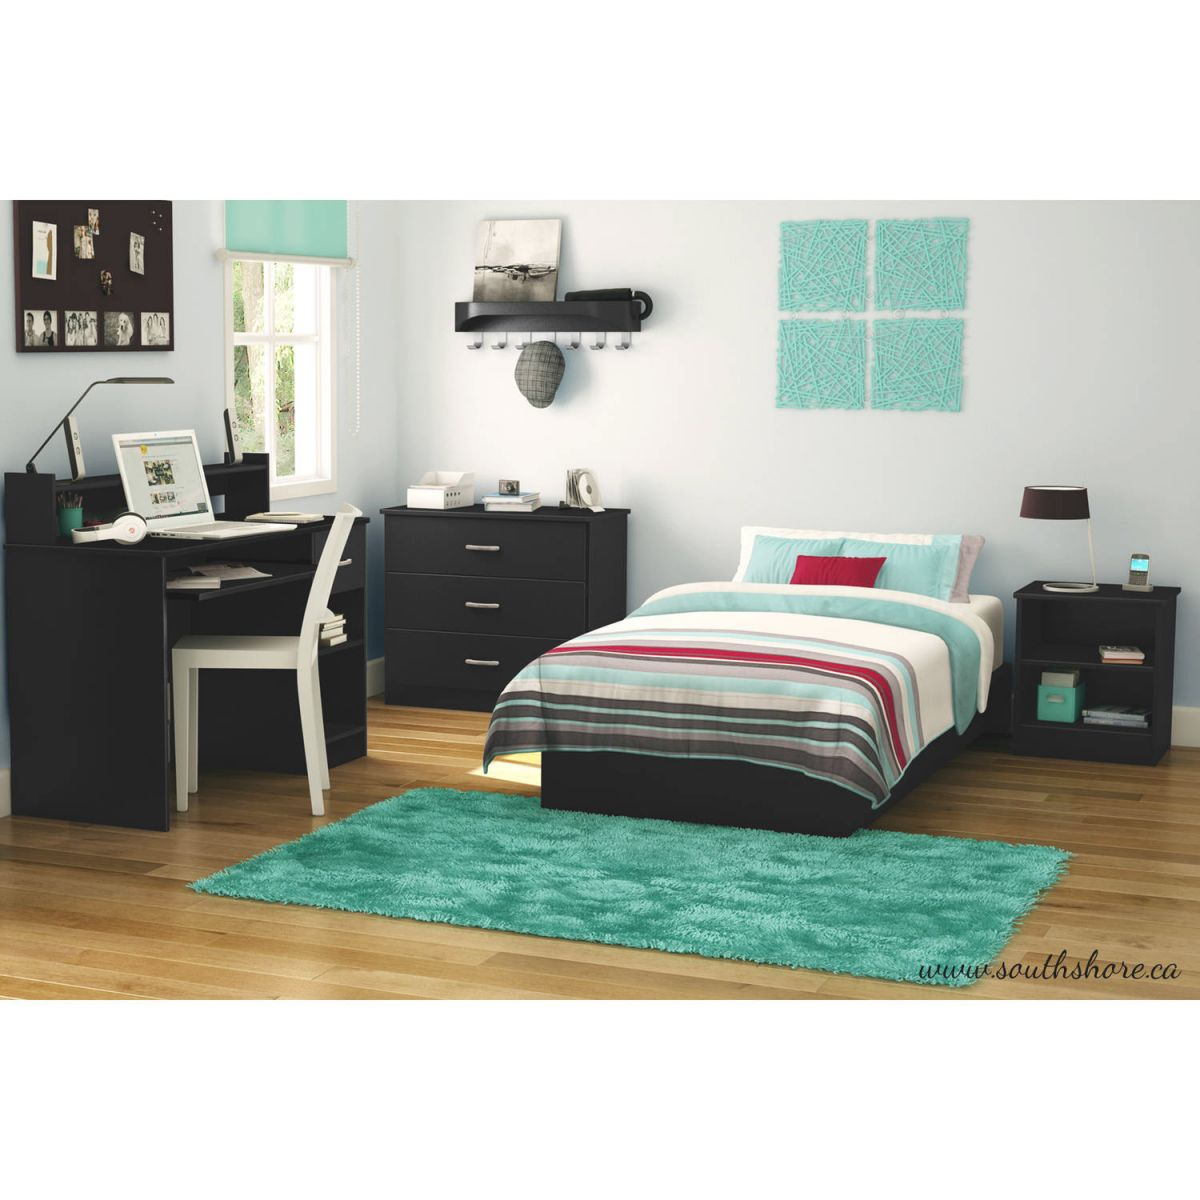 South Shore Smart Basics 3-Piece Bedroom Set With Desk, Multiple Finishes – Walmart with regard to Best of Bedroom Set With Desk